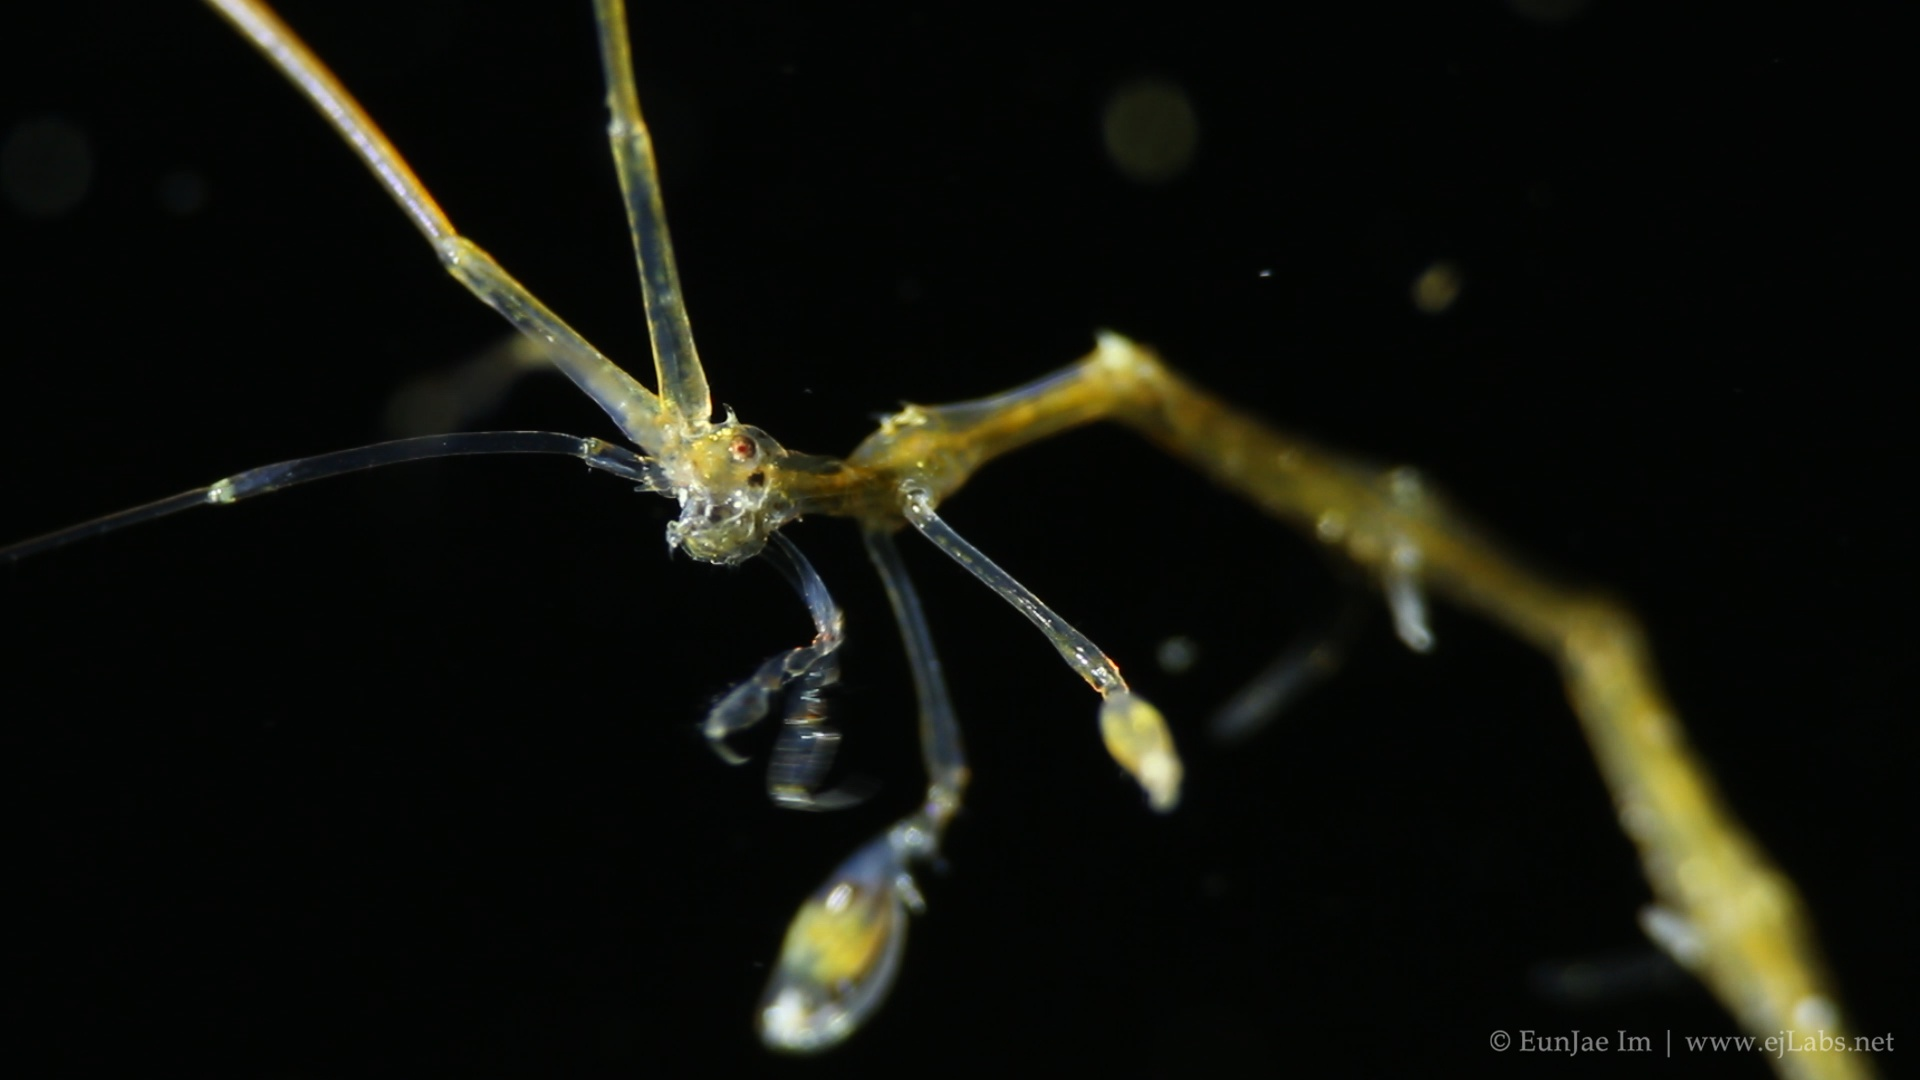 Skeleton Shrimps – Caprellidae : Part 2